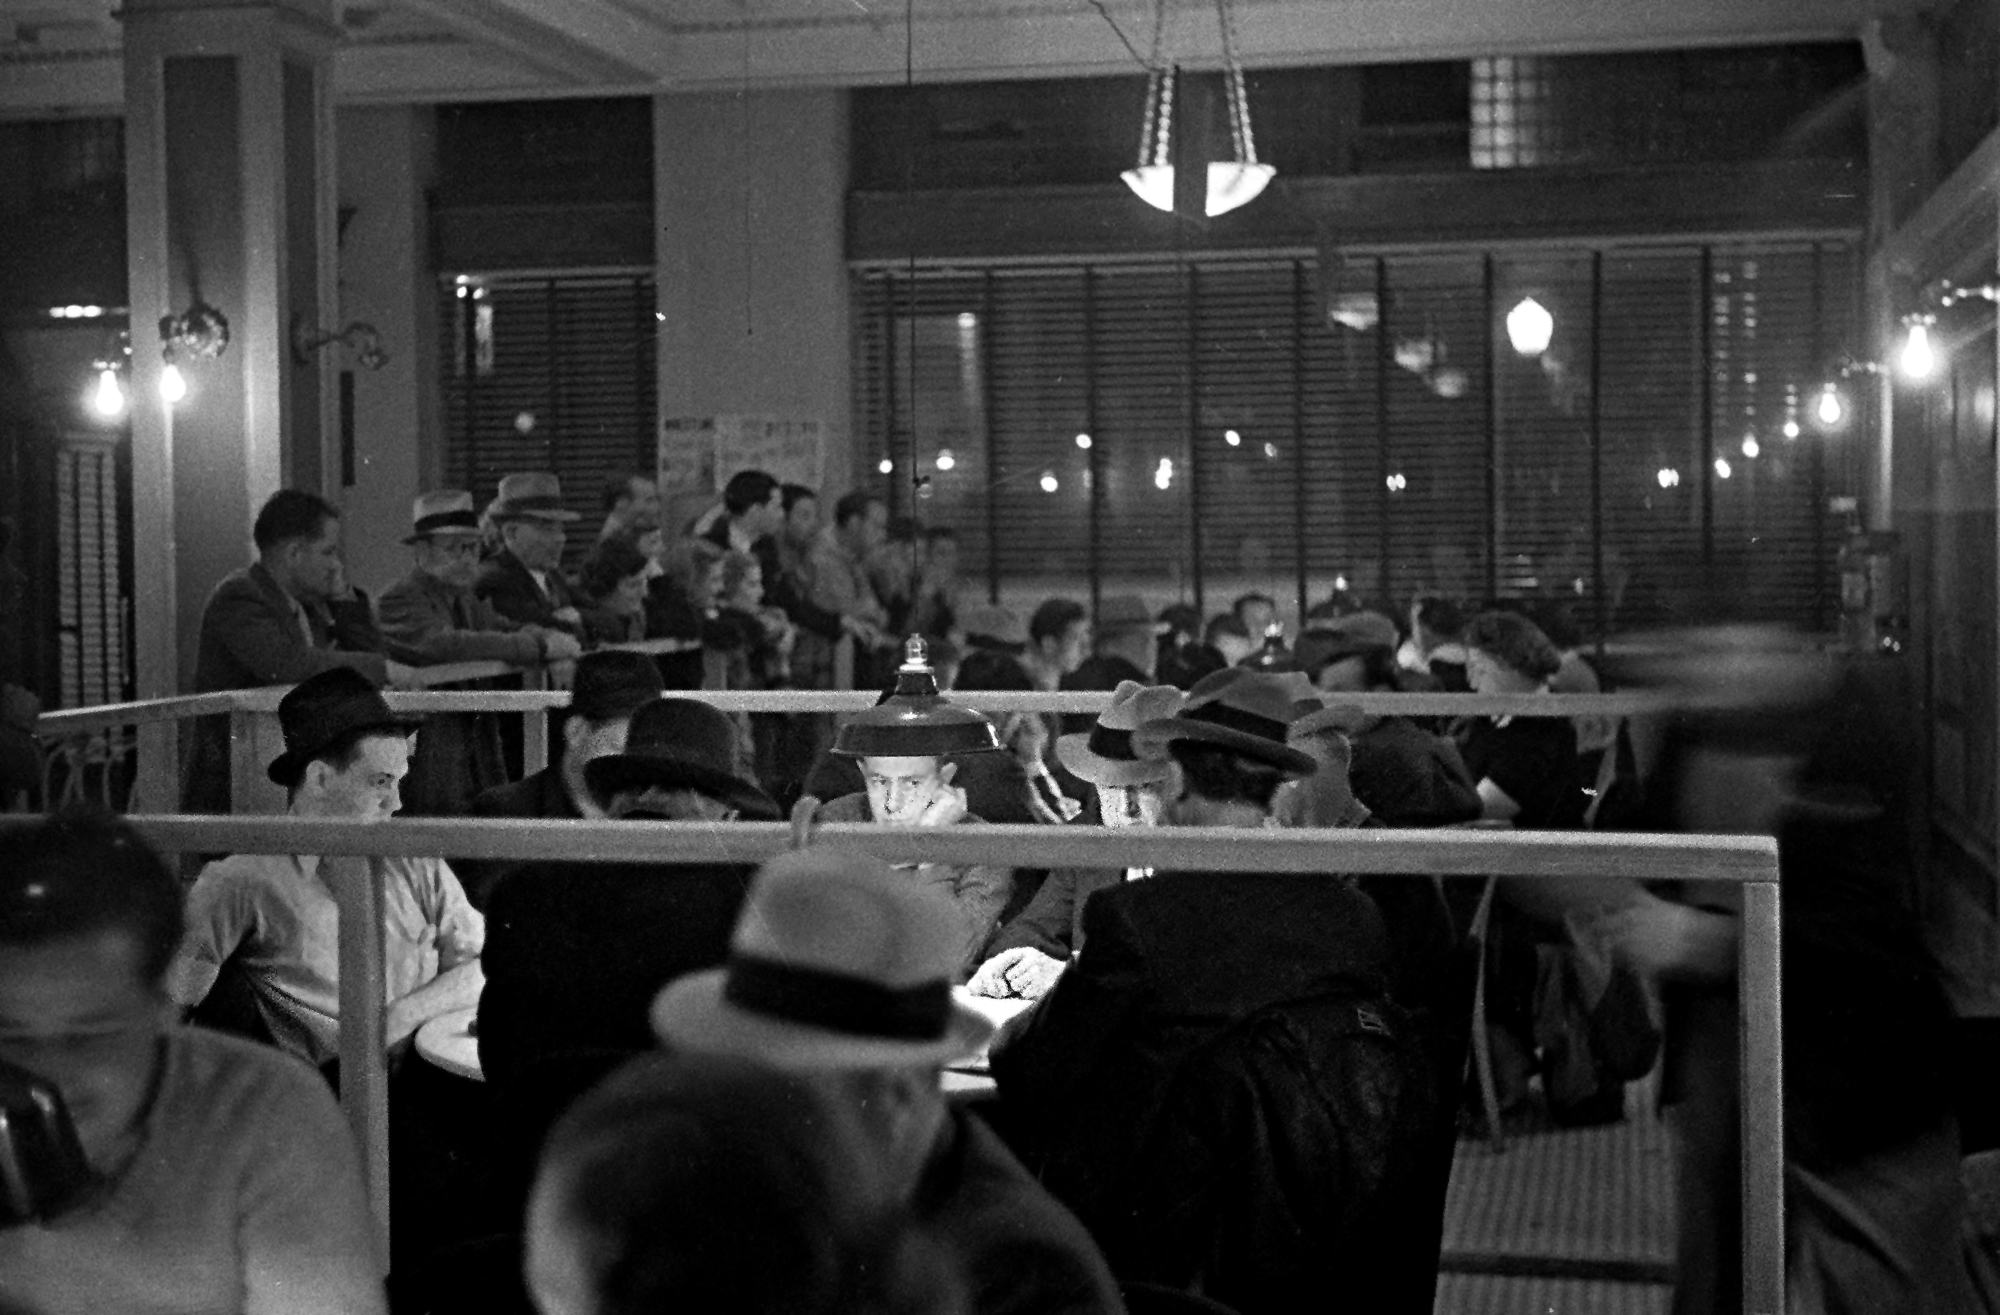 California cardrooms flourished in the 1930s.